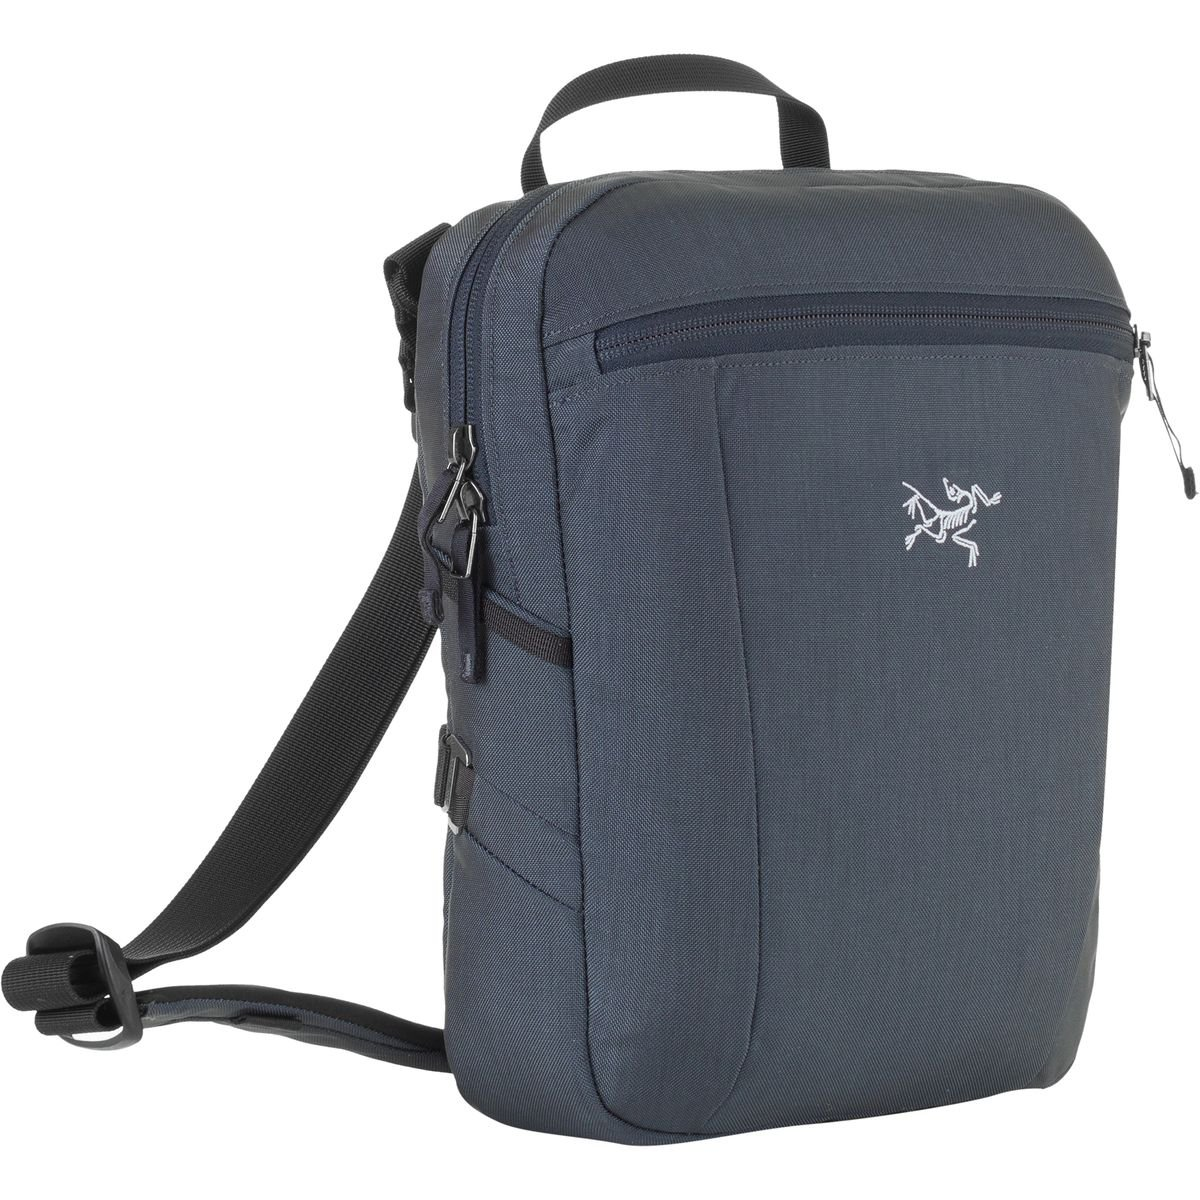 Arc'teryx Unisex Slingblade 4 Shoulder Bag Heron One Size